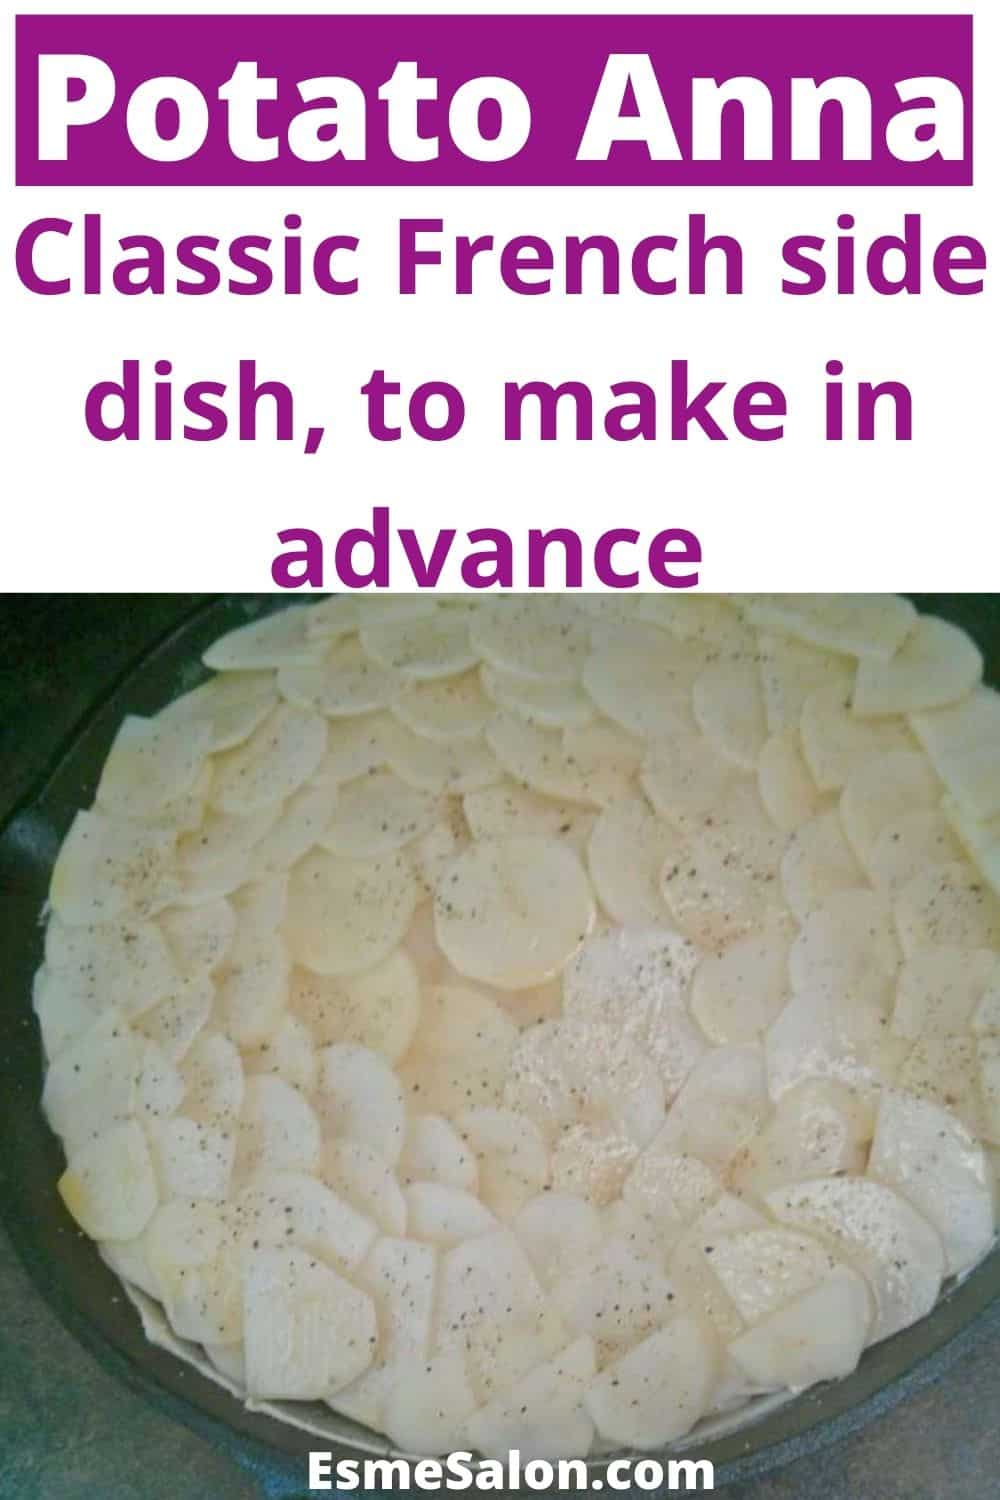 A classic French dish and can be made in advance - Potato Anna